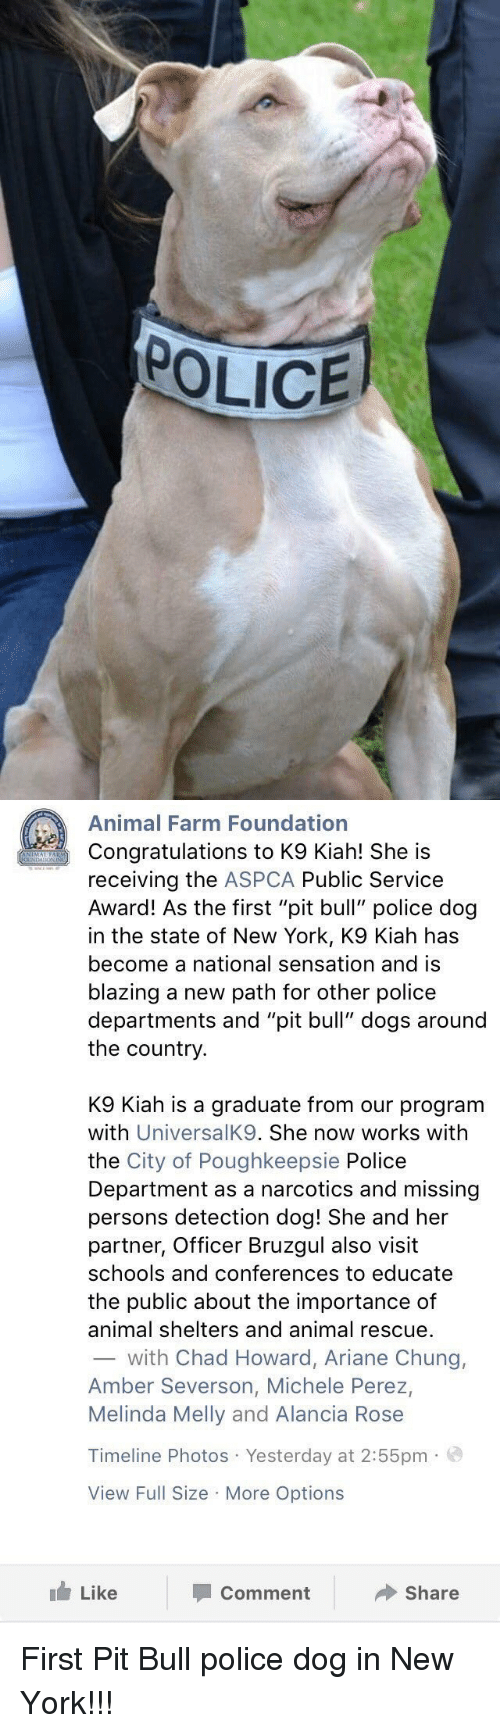 """Aspca: POLICE   Animal Farm Foundation  Congratulations to K9 Kiah! She is  receiving the  ASPCA Public Service  Award! As the first """"pit bull"""" police dog  in the state of New York, K9 Kiah has  become a national sensation and is  blazing a new path for other police  departments and """"pit bull"""" dogs around  the country  K9 Kiah is a graduate from our program  with  UniversalK9. She now works with  the City of Poughkeepsie Police  Department as a narcotics and missing  persons detection dog! She and her  partner, Officer Bruzgul also visit  schools and conferences to educate  the public about the importance of  animal shelters and animal rescue.  with Chad Howard, Ariane Chung,  Amber Severson, Michele Perez,  Melinda Melly and Alancia Rose  Timeline Photos Yesterday at 2:55pm.  View Full Size More Options  Like  Share  Comment First Pit Bull police dog in New York!!!"""